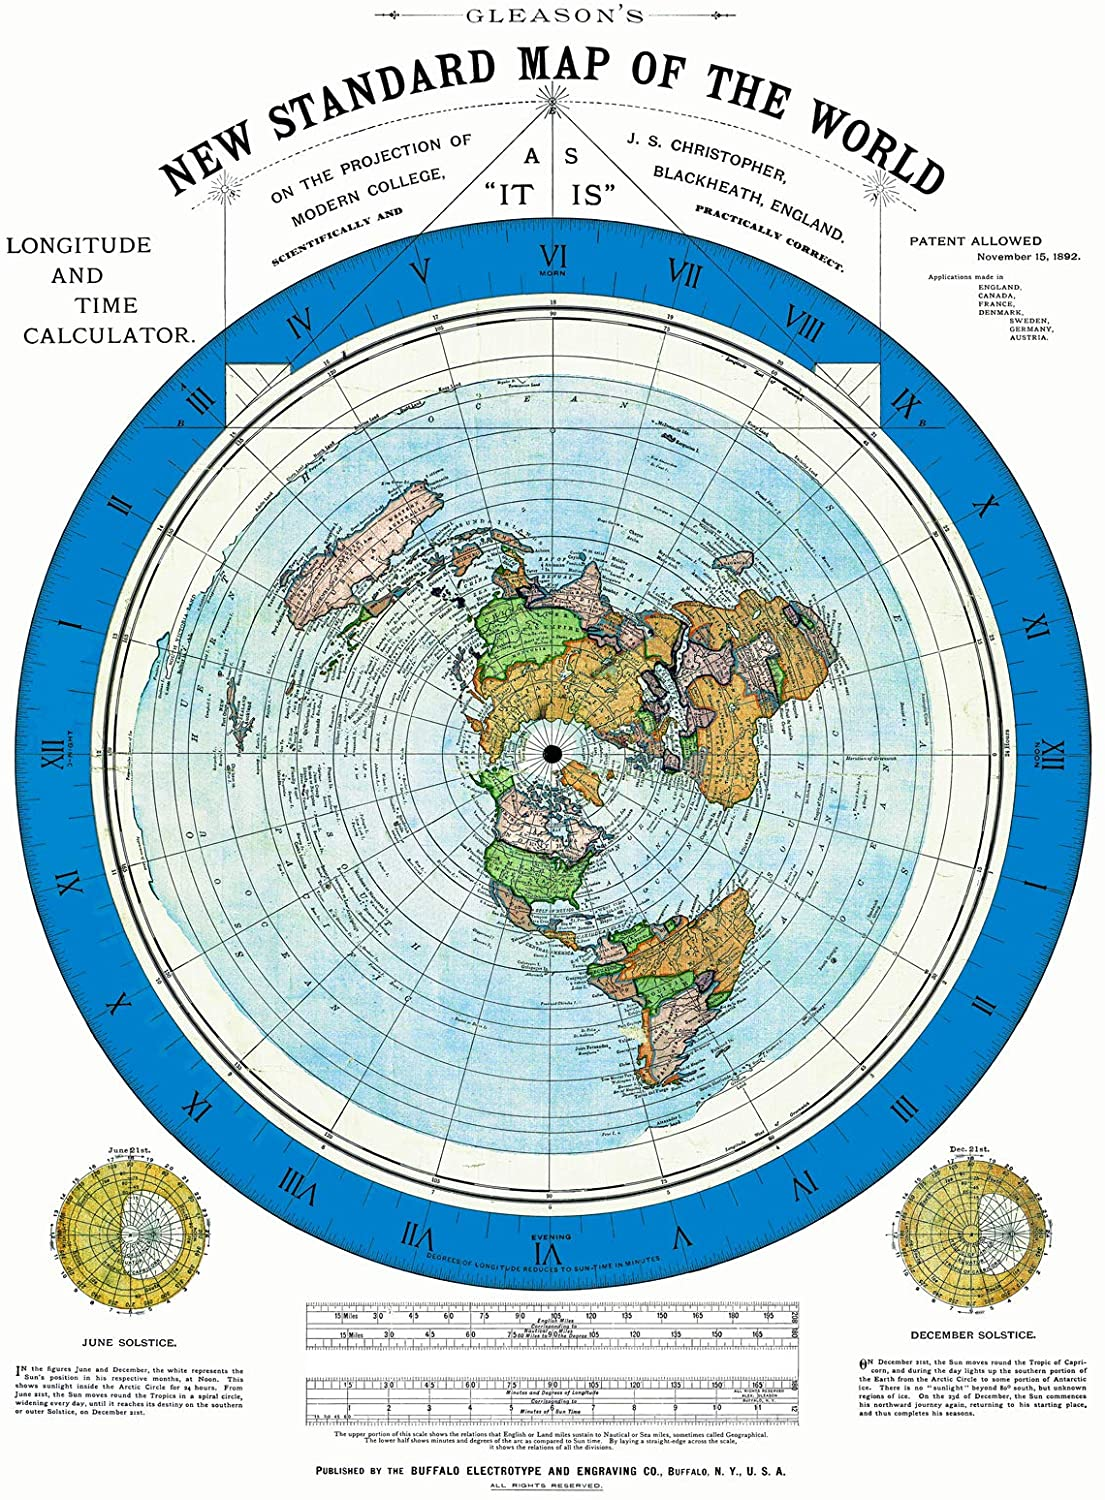 Amazon.com: Riley Creative Solutions 1892 Flat Earth Map - Alexander  Gleason's New Standard Map of The World 24 x 36 Large Wall Art Poster:  Posters & Prints